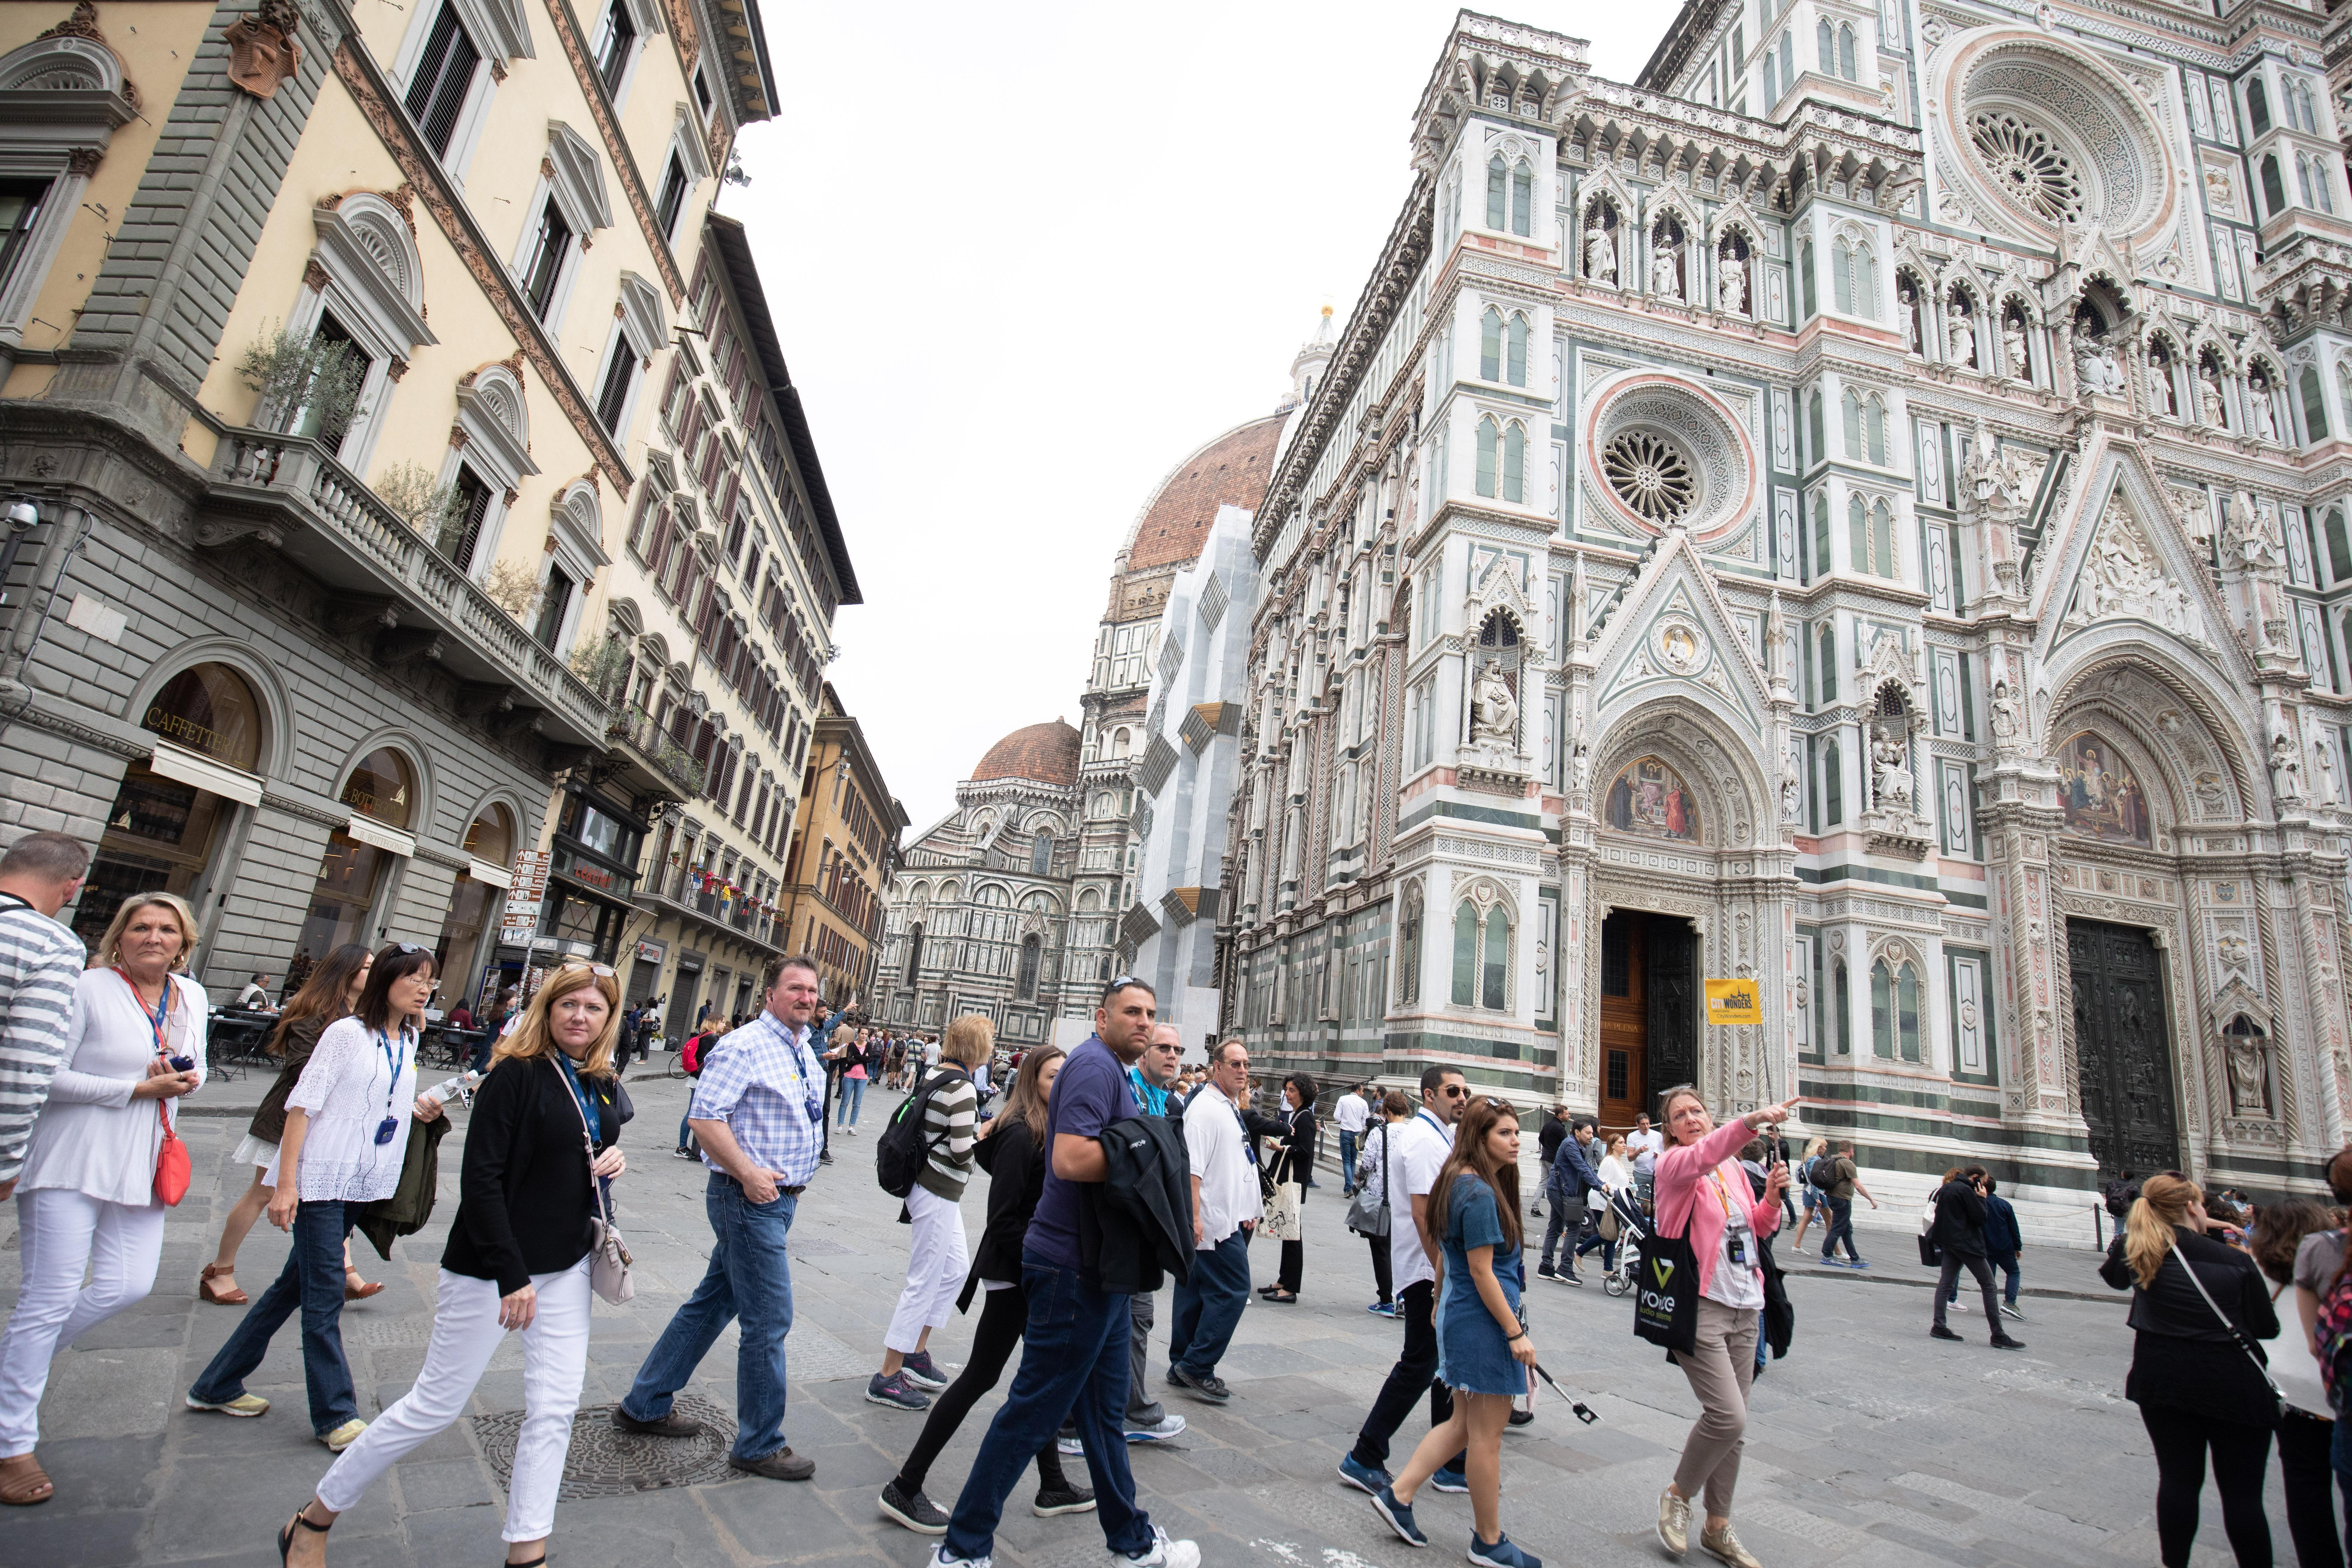 How to Spend 1 Day in Florence